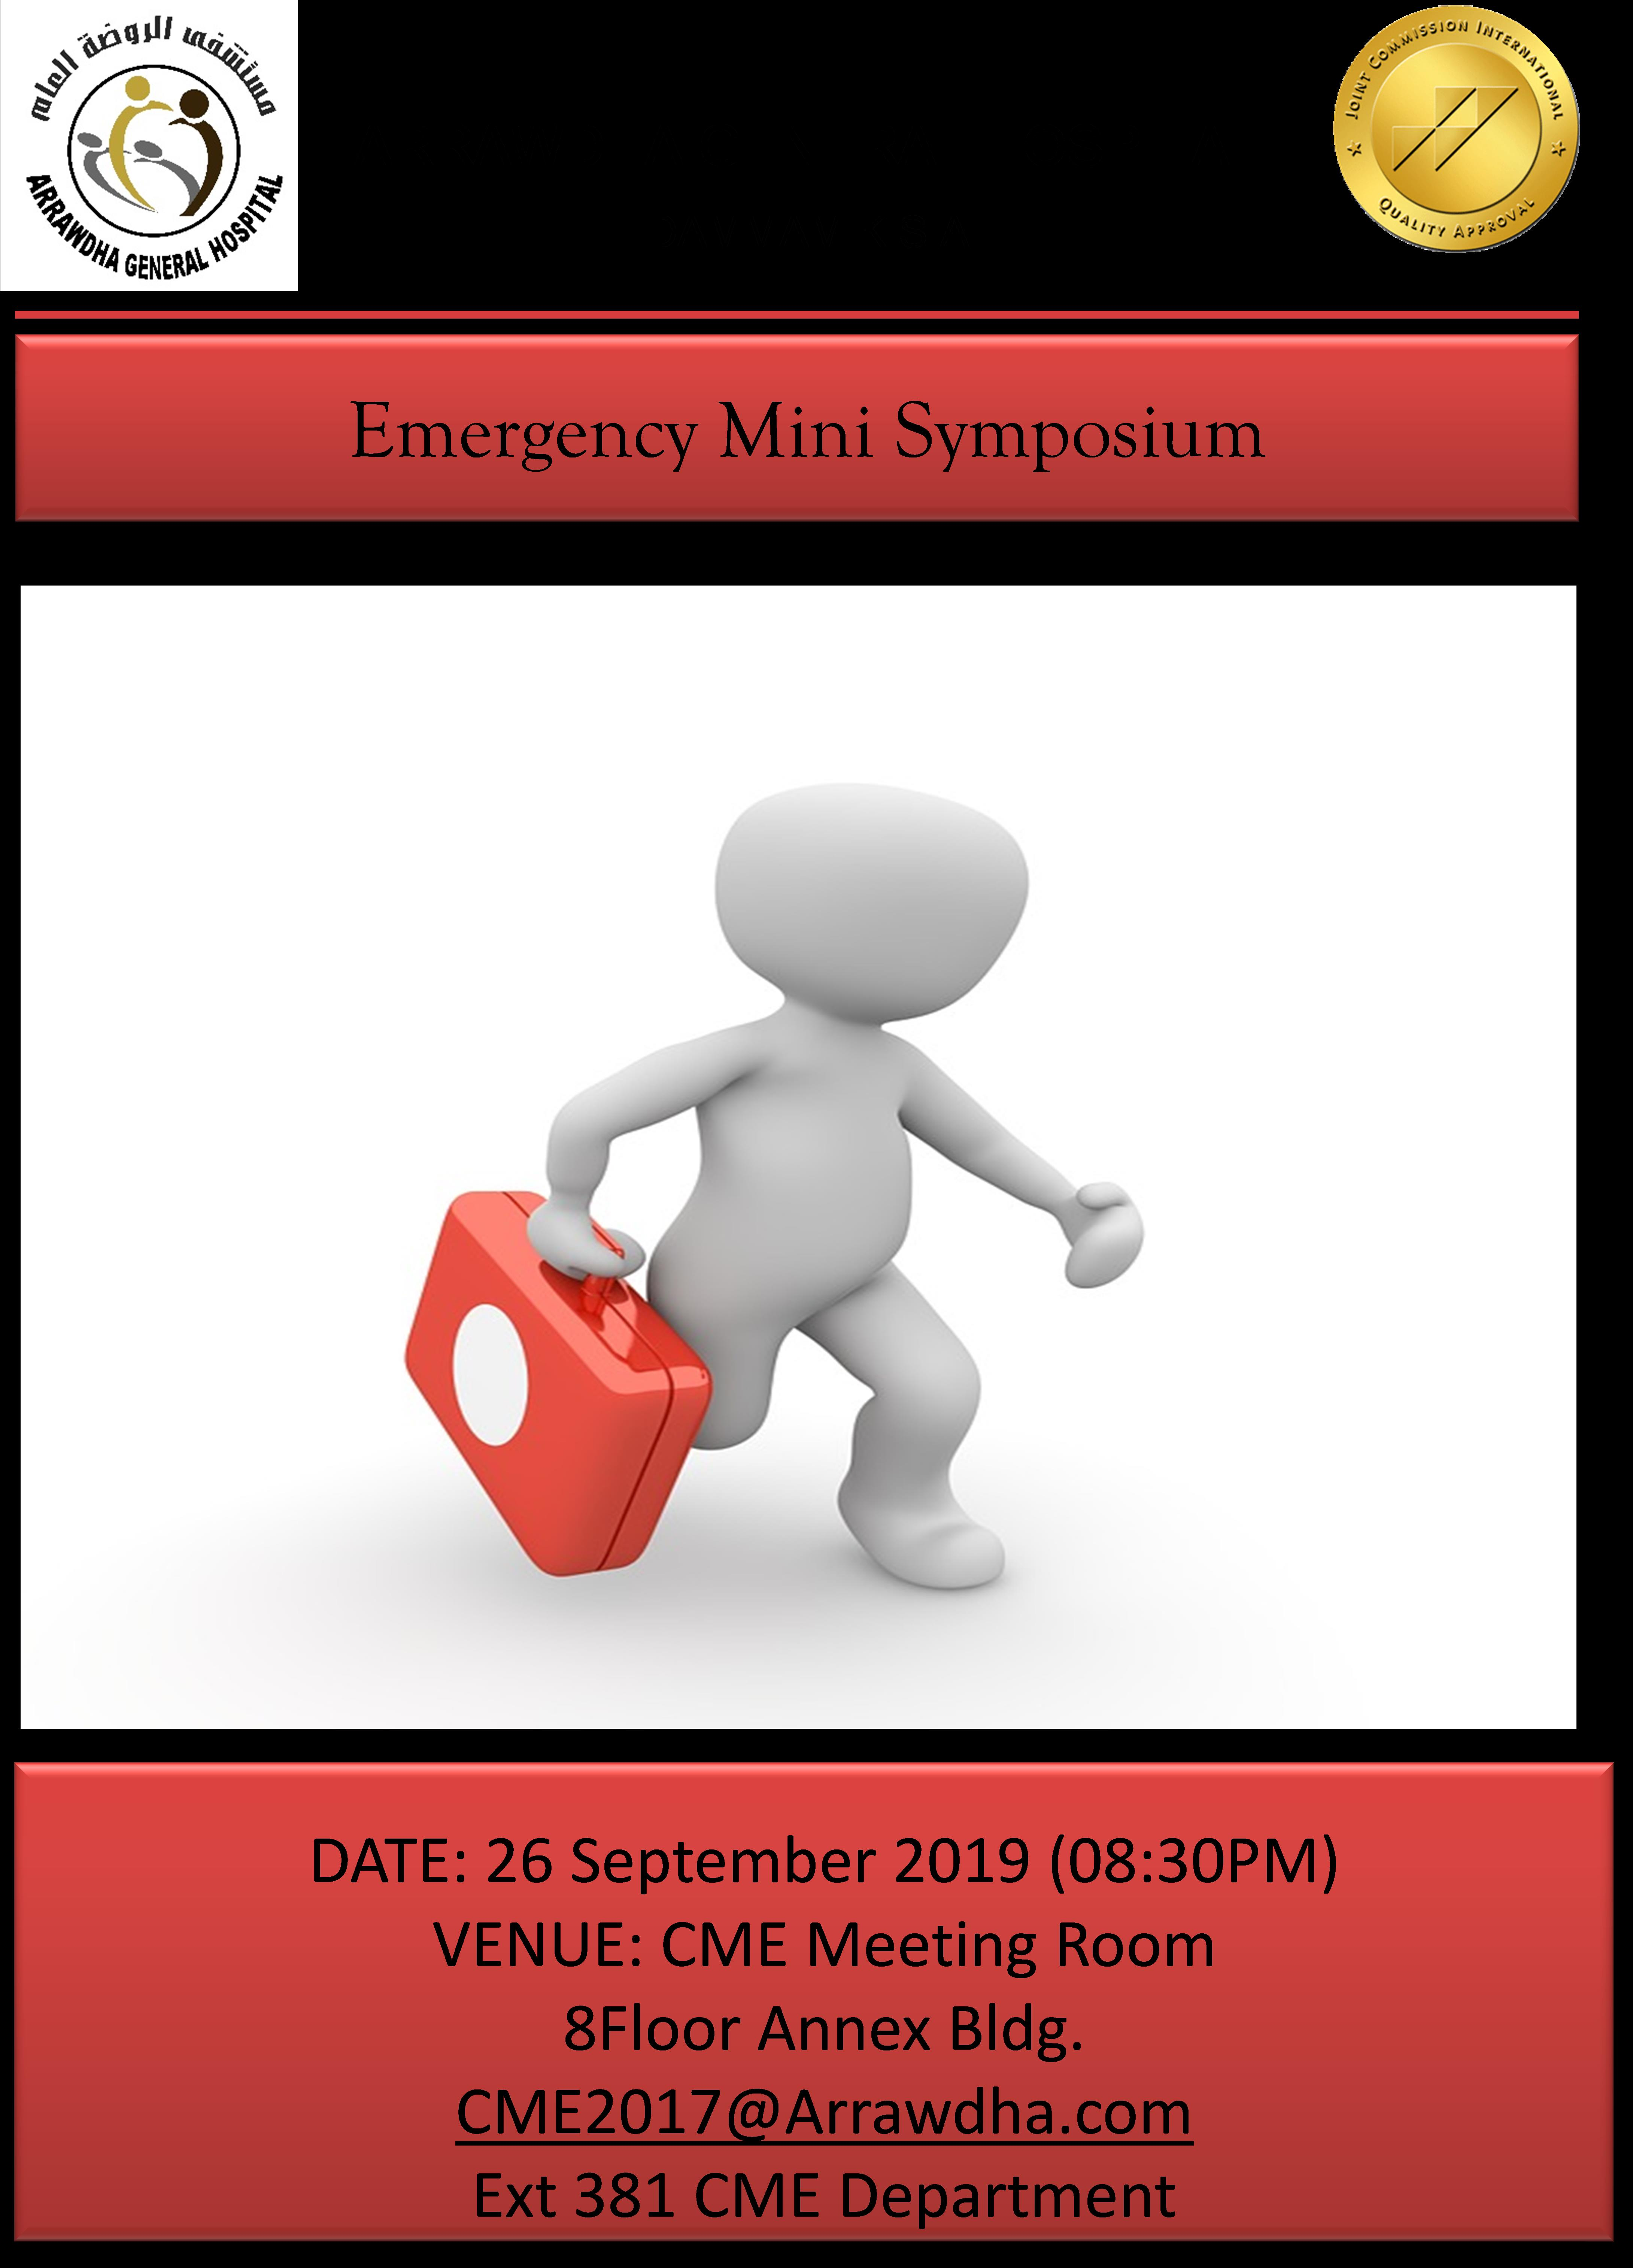 Emergency Mini Symposium